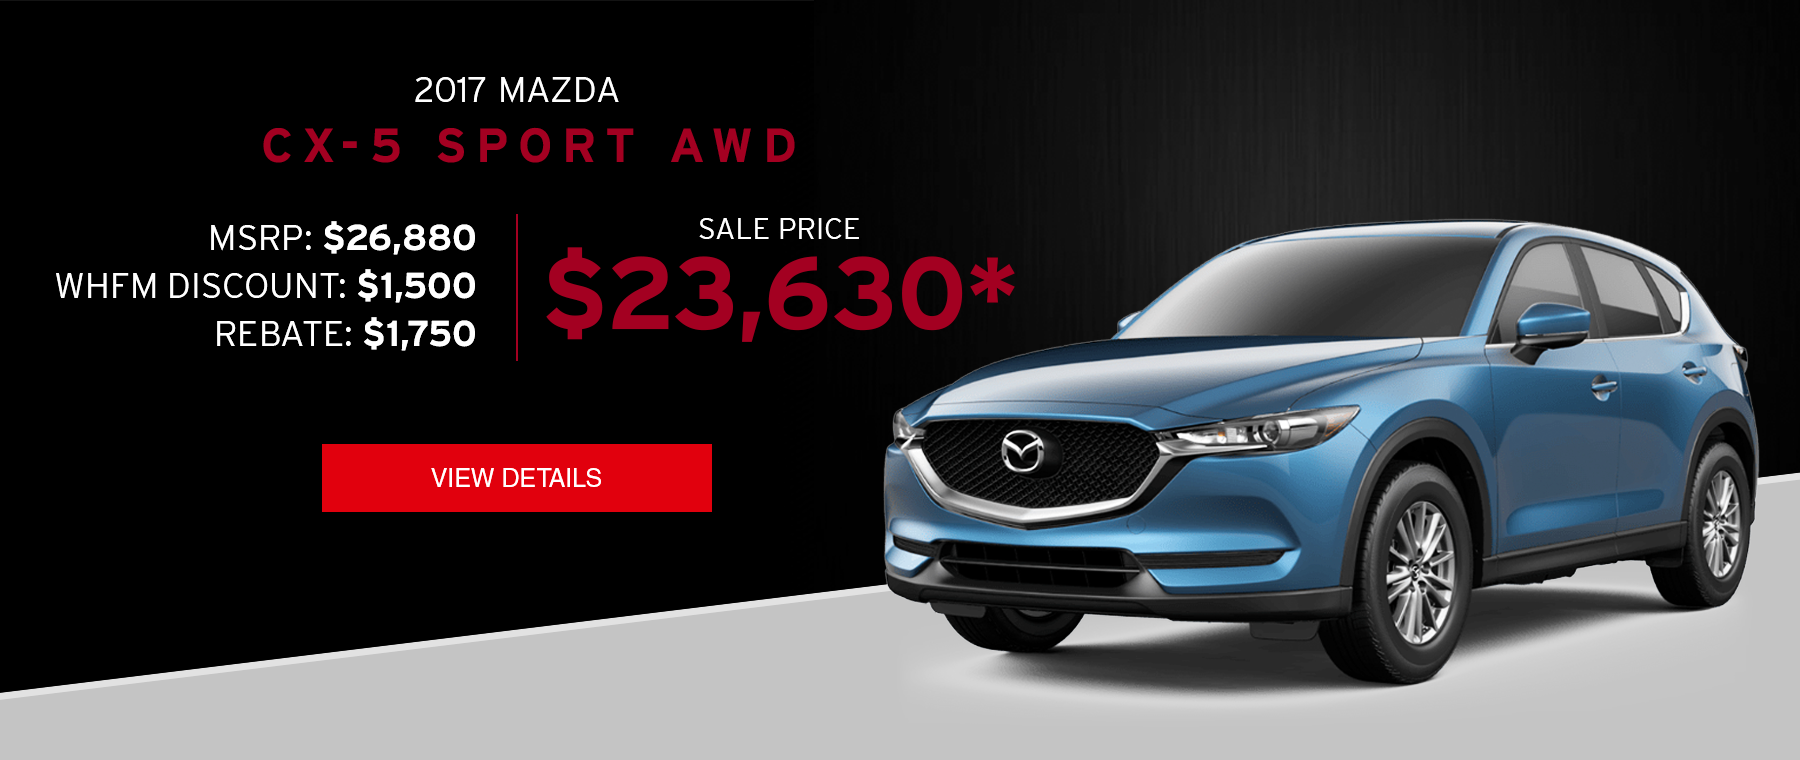 West Hills Mazda CX-5 Offer